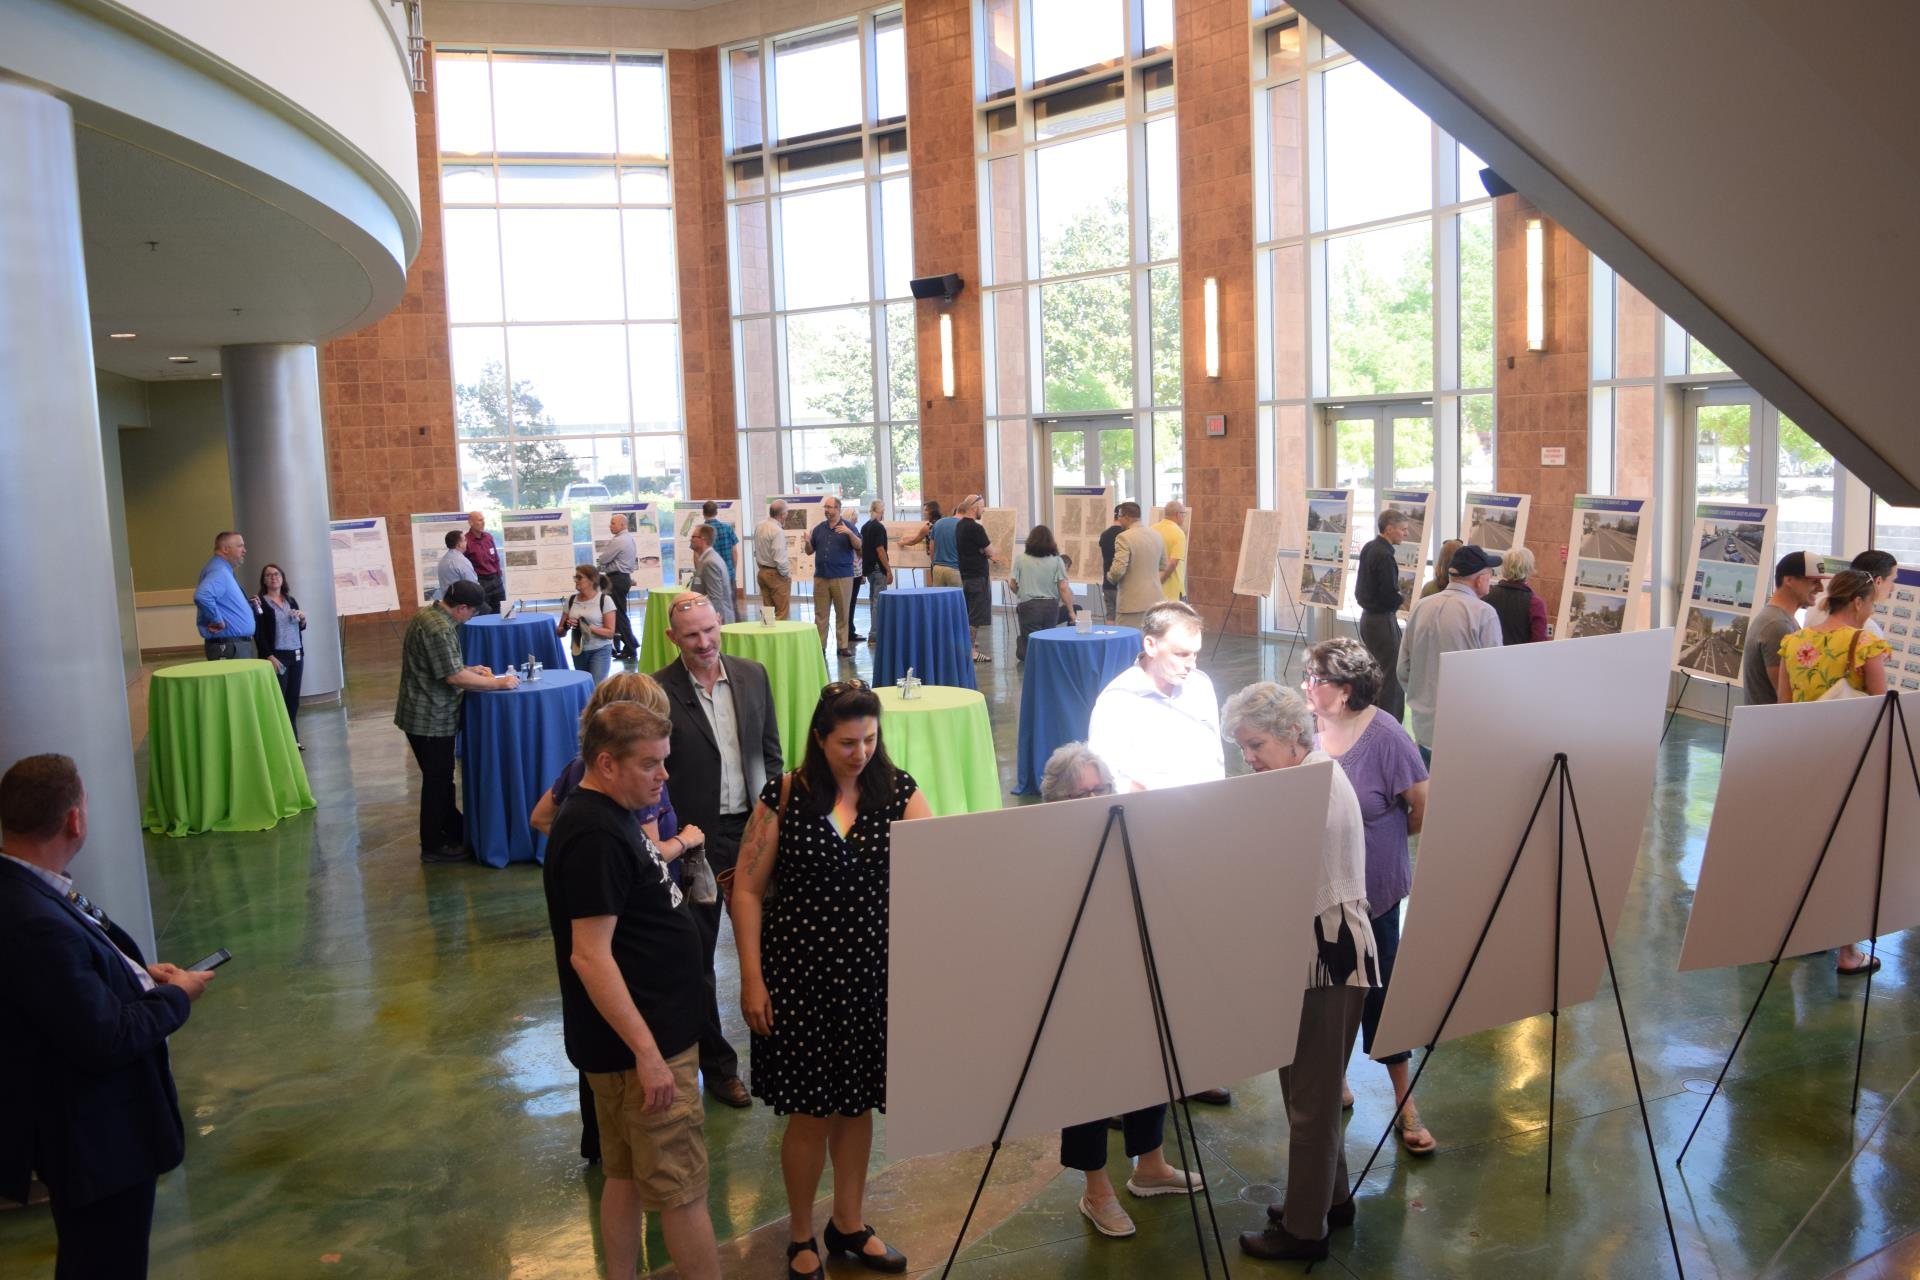 pioneer bluff open house picture of crowd